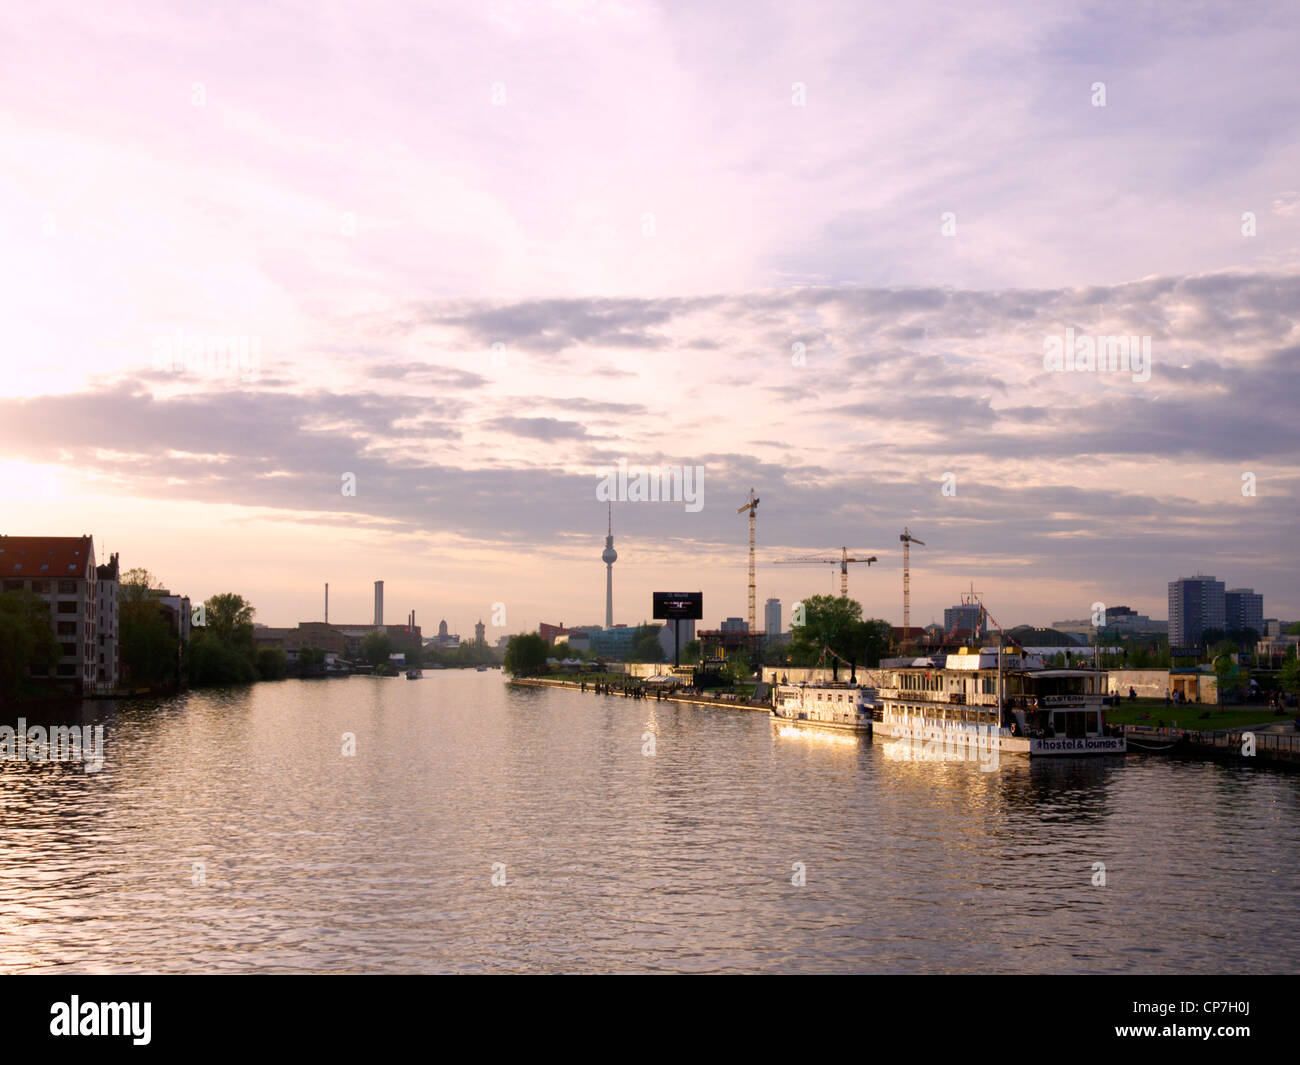 Berlin cityscape at dusk - Stock Image